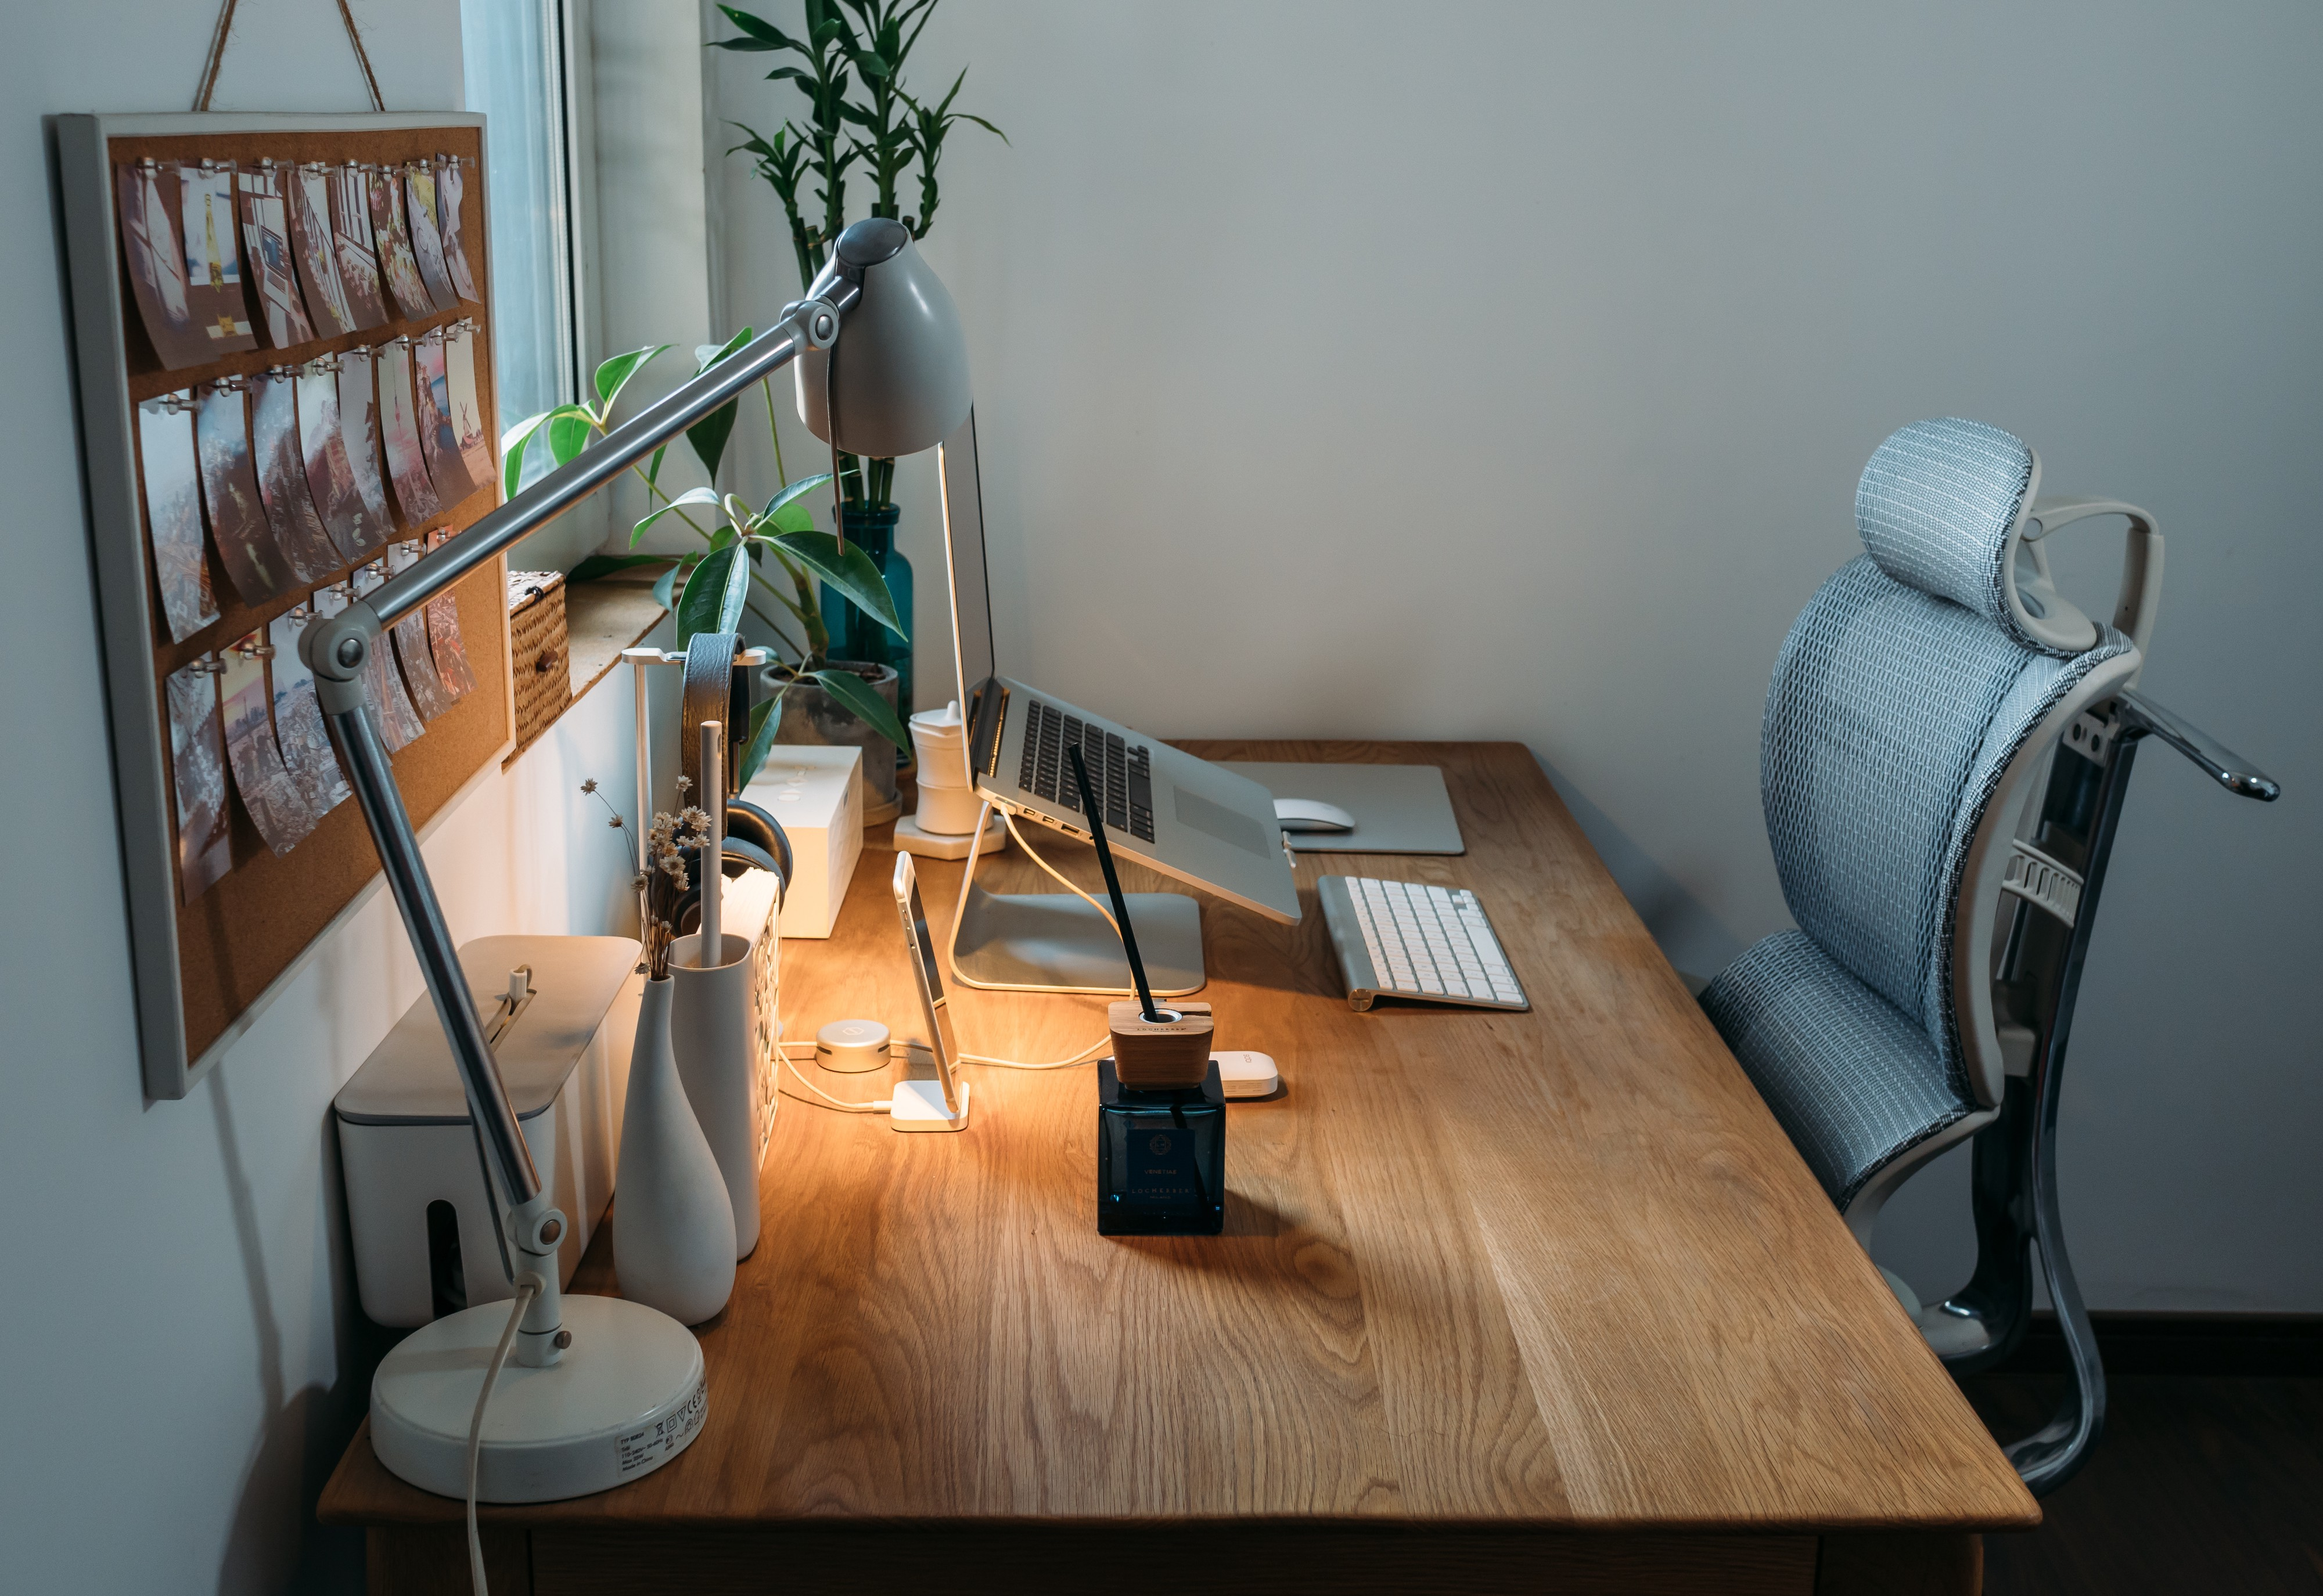 Work from home setup with wooden desk, sat directly at a small window, with minimal appliances, several small plants, a macbook on a standard, a keyboard and a mouse. On the wall there is a cork board with pinned images into it.